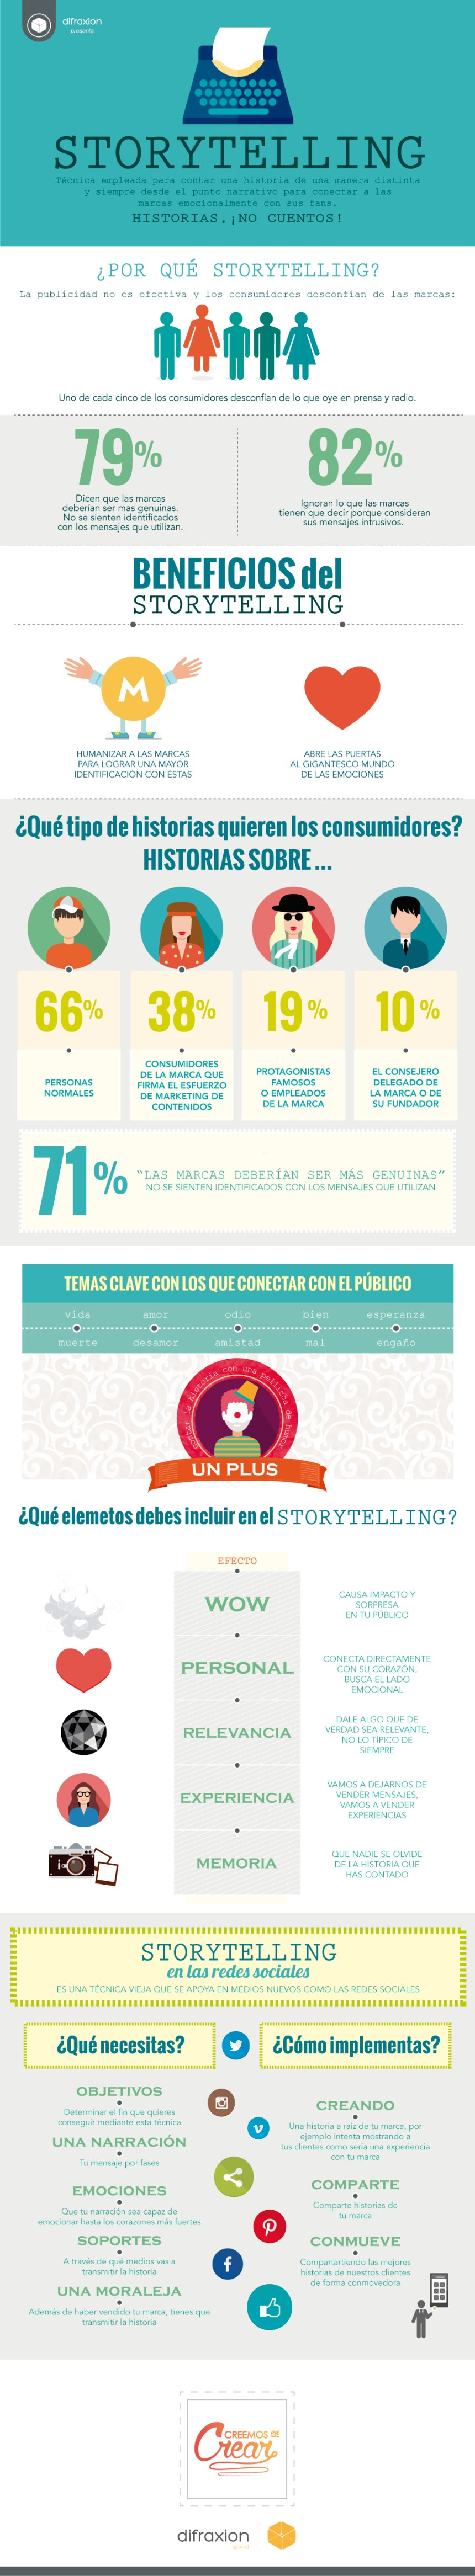 Storytelling: todo lo que debes saber